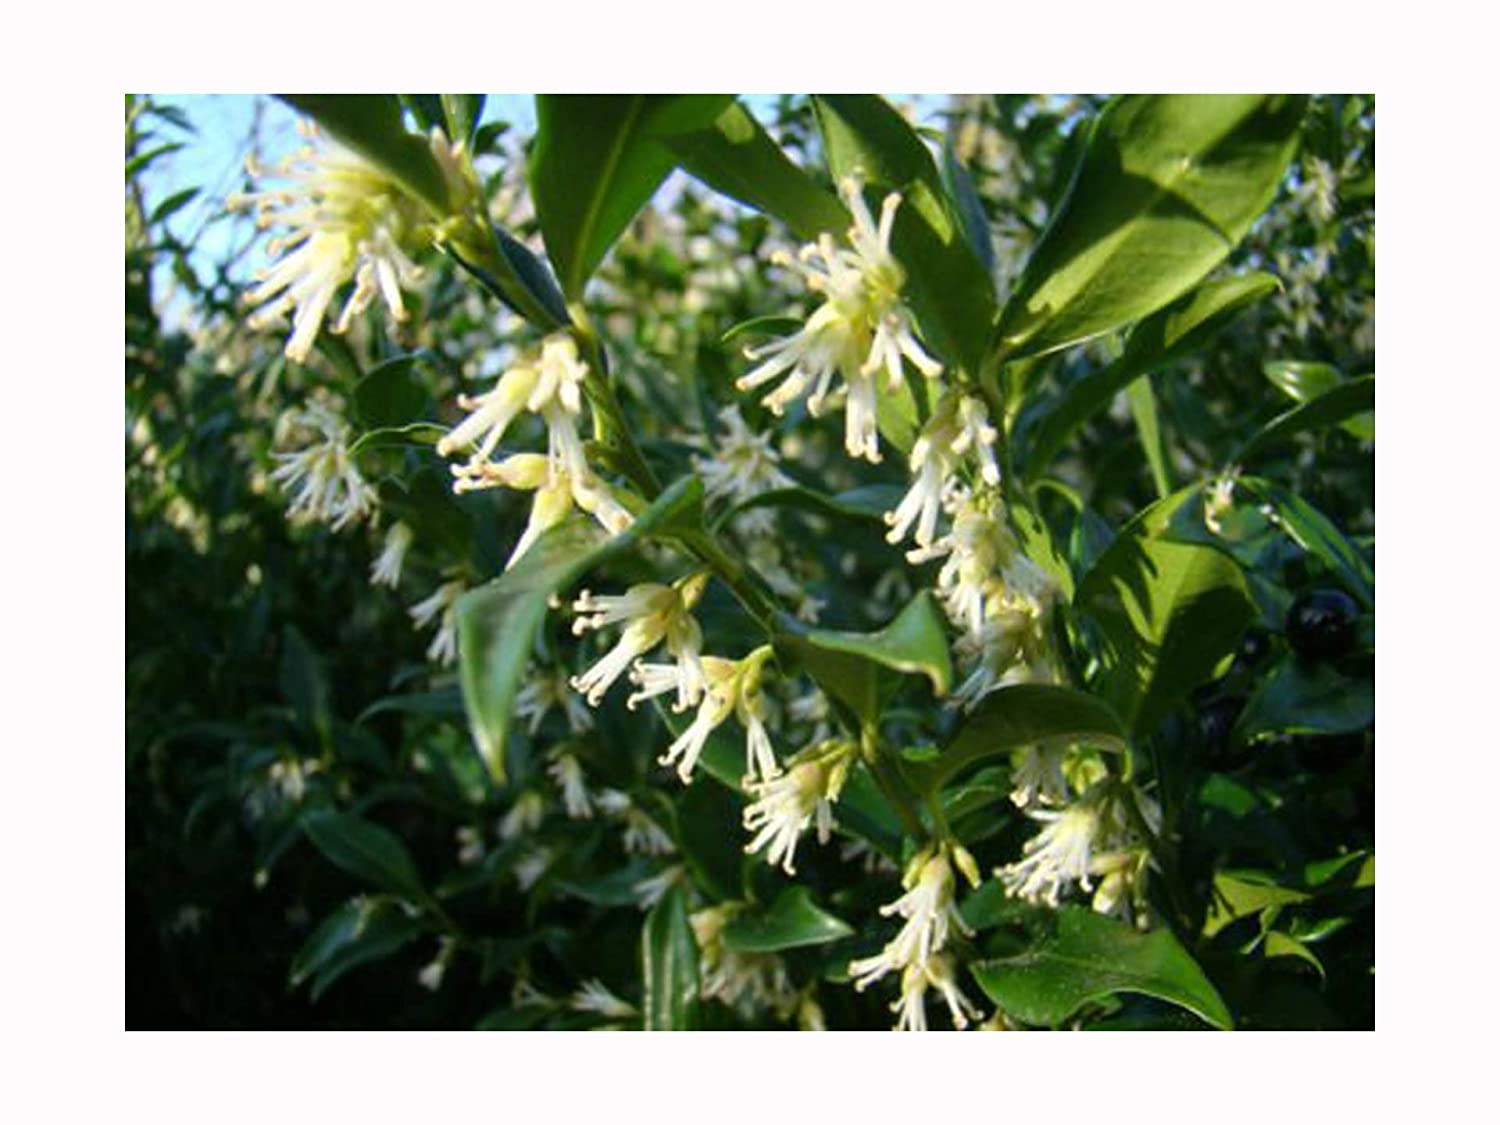 OUTDOOR GARDEN PLANT scented WINTER FLOWERING Sarcococca confusa CHRISTMAS BOX shrub